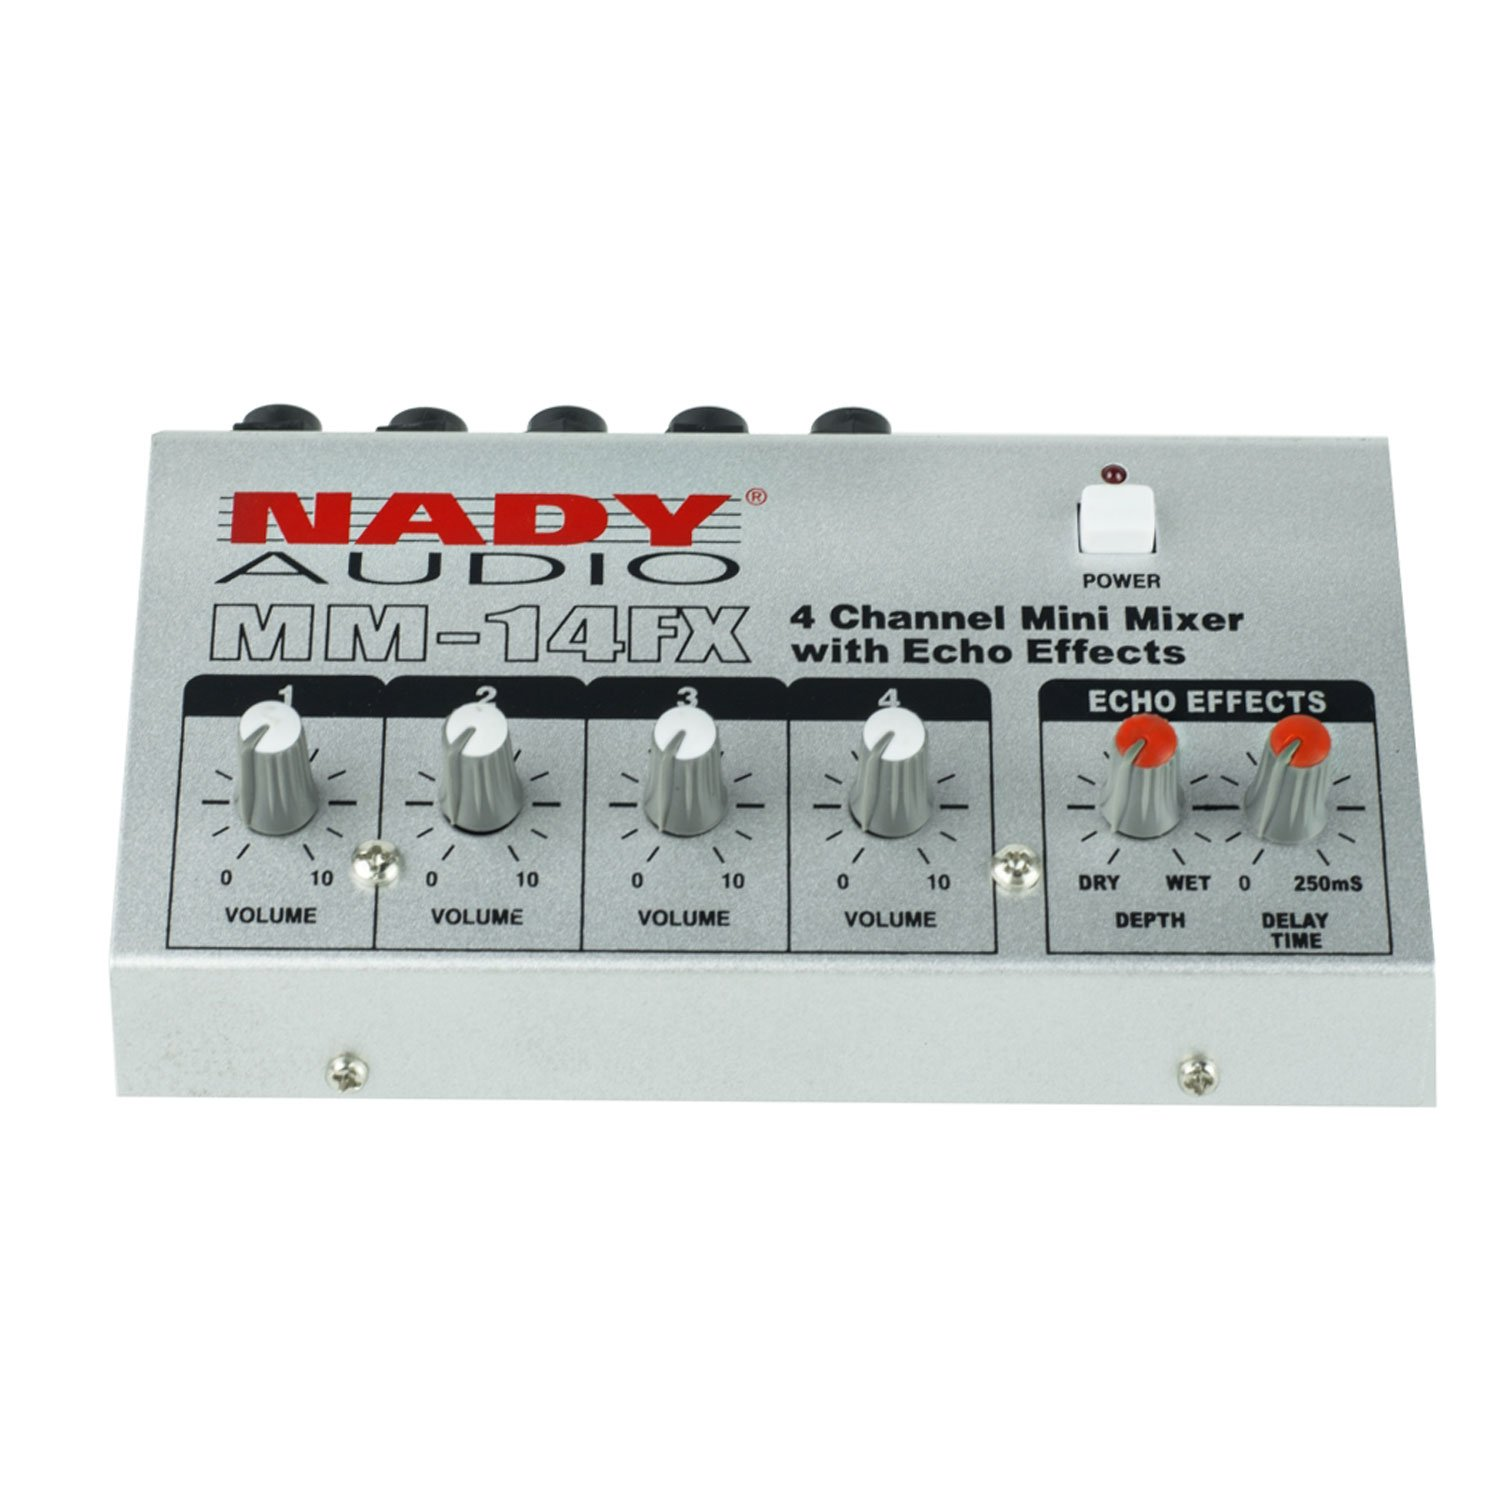 "Nady MM-14FX 4-Channel Microphone Mixer with integrated echo effect – ¼"" Inputs & output – Delay time & Depth controls MM14FX"